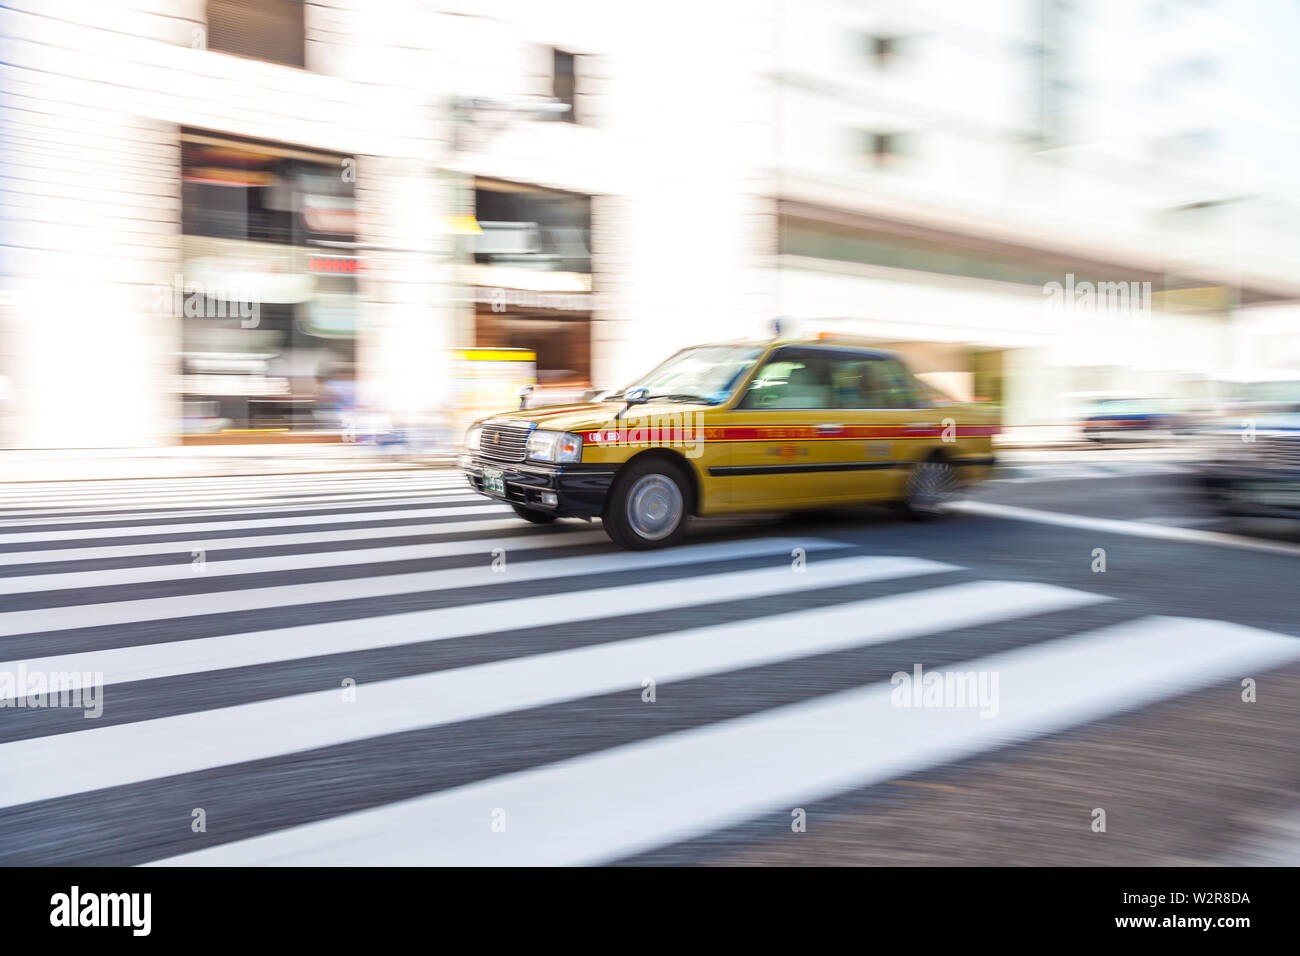 Motion blurred shot of yellow taxi cab on pedestrian crossing, Tokyo, Japan. - Stock Image